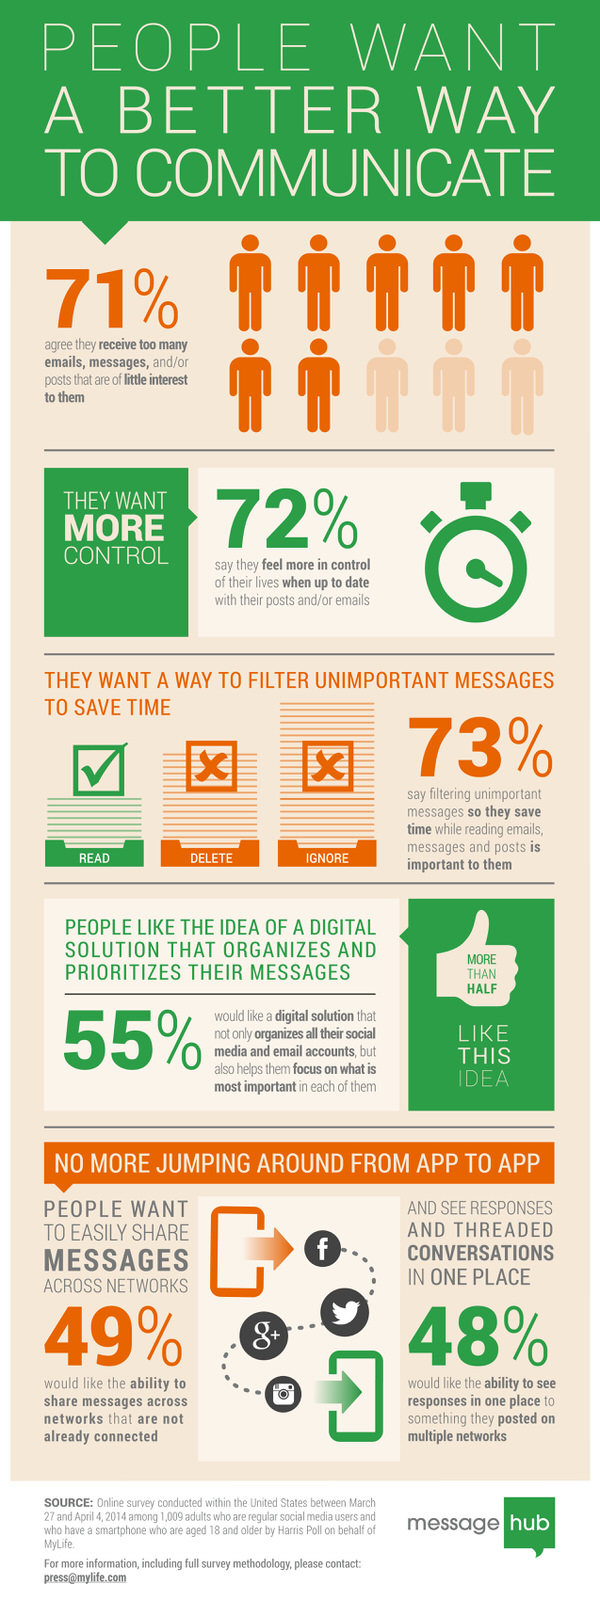 People want a better way to communicate #infographic #messagehub